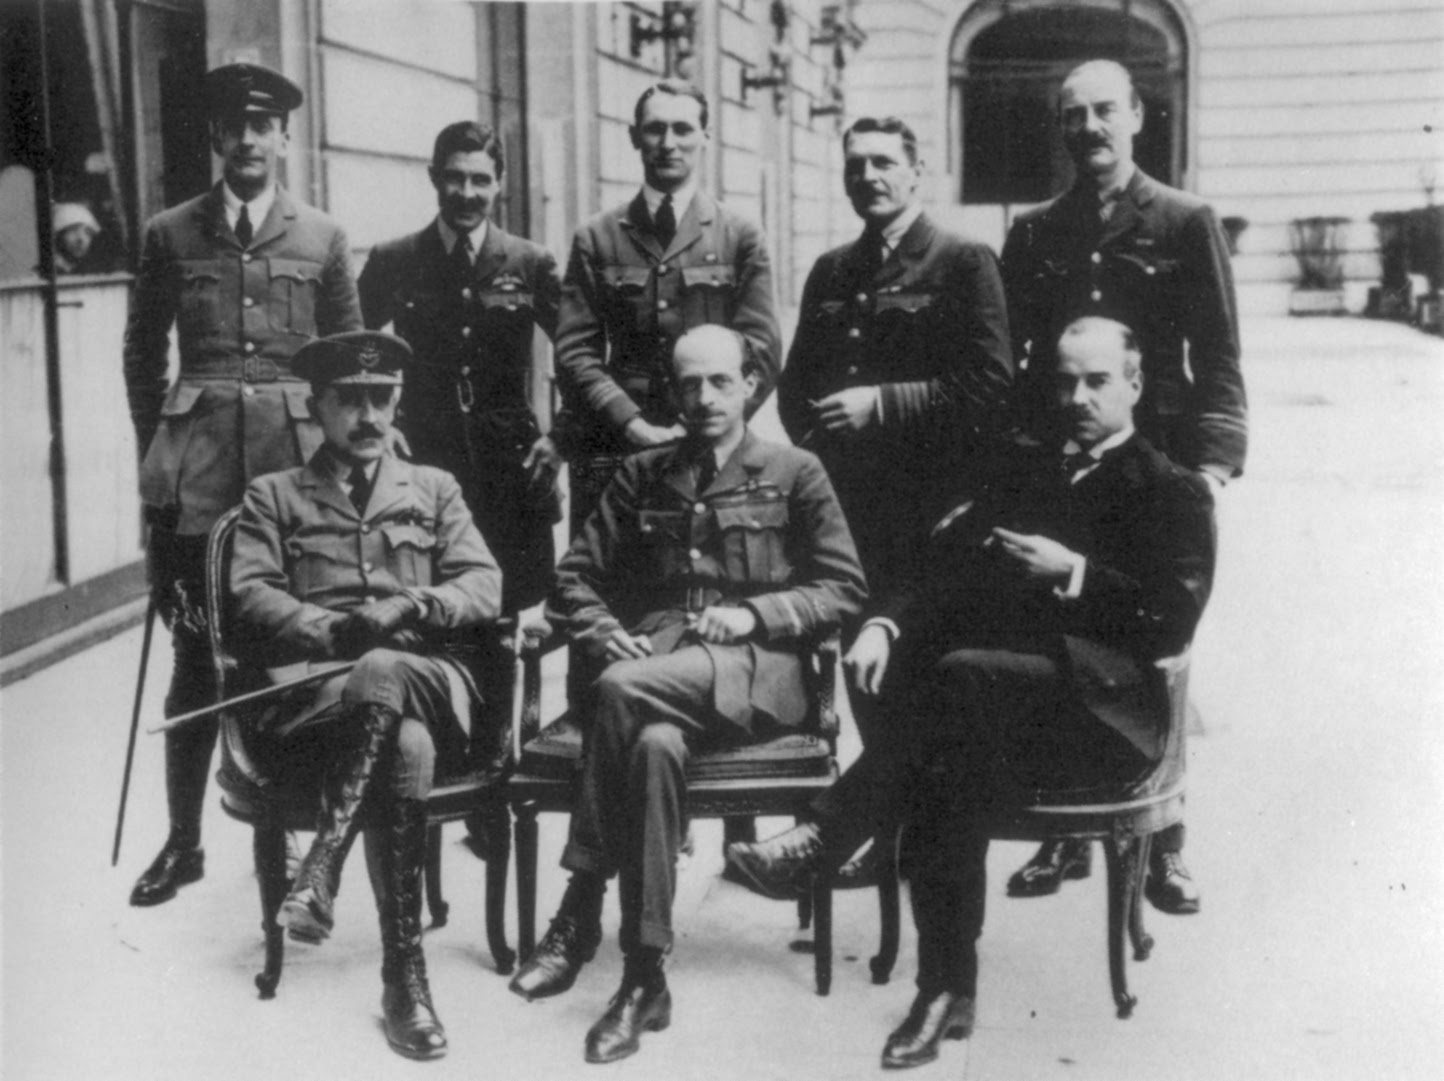 British Air Section at the Paris Peace Conference in February 1919